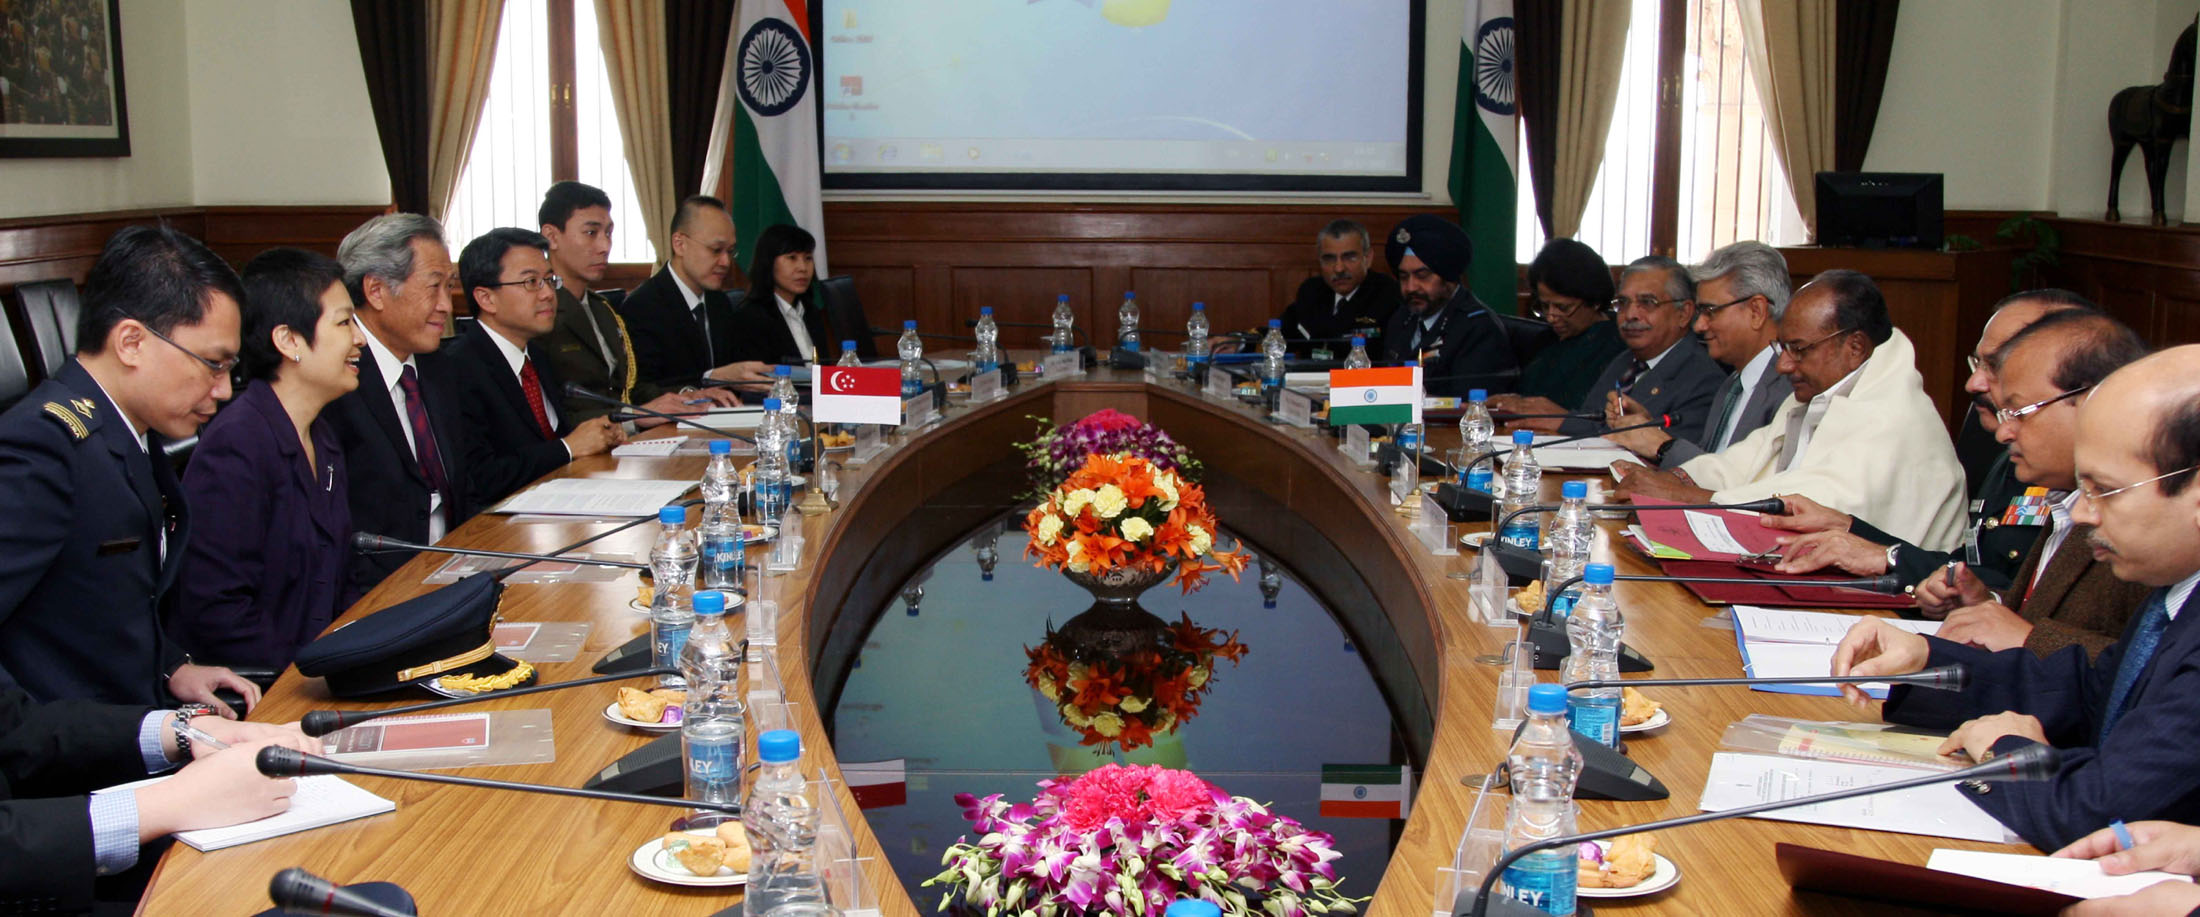 The Defence Minister of Singapore, Dr. Ng Eng Hen, and the Defence Minister, A. K. Antony, at the delegation level talks, in New Delhi on November 21, 2012.